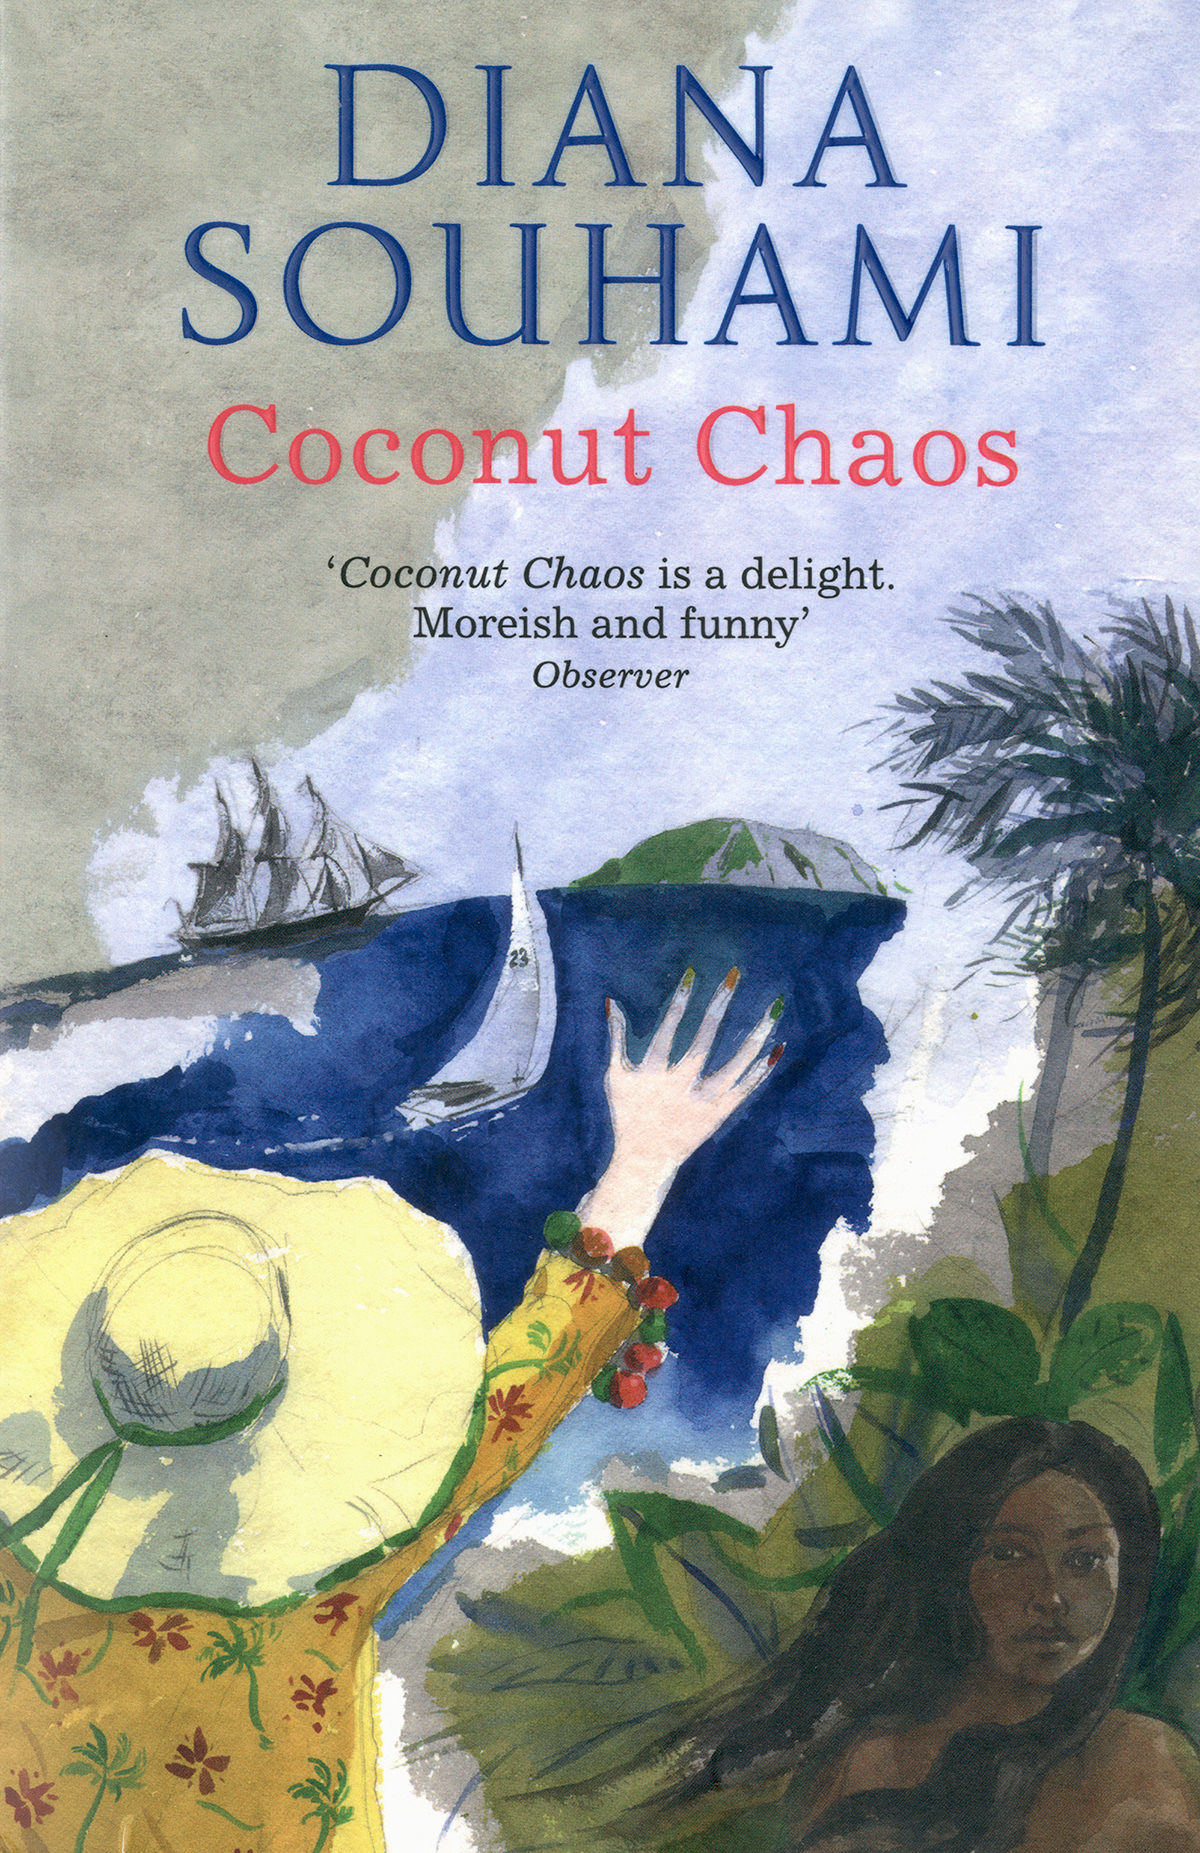 'Coconut Chaos' by Diana Souhami